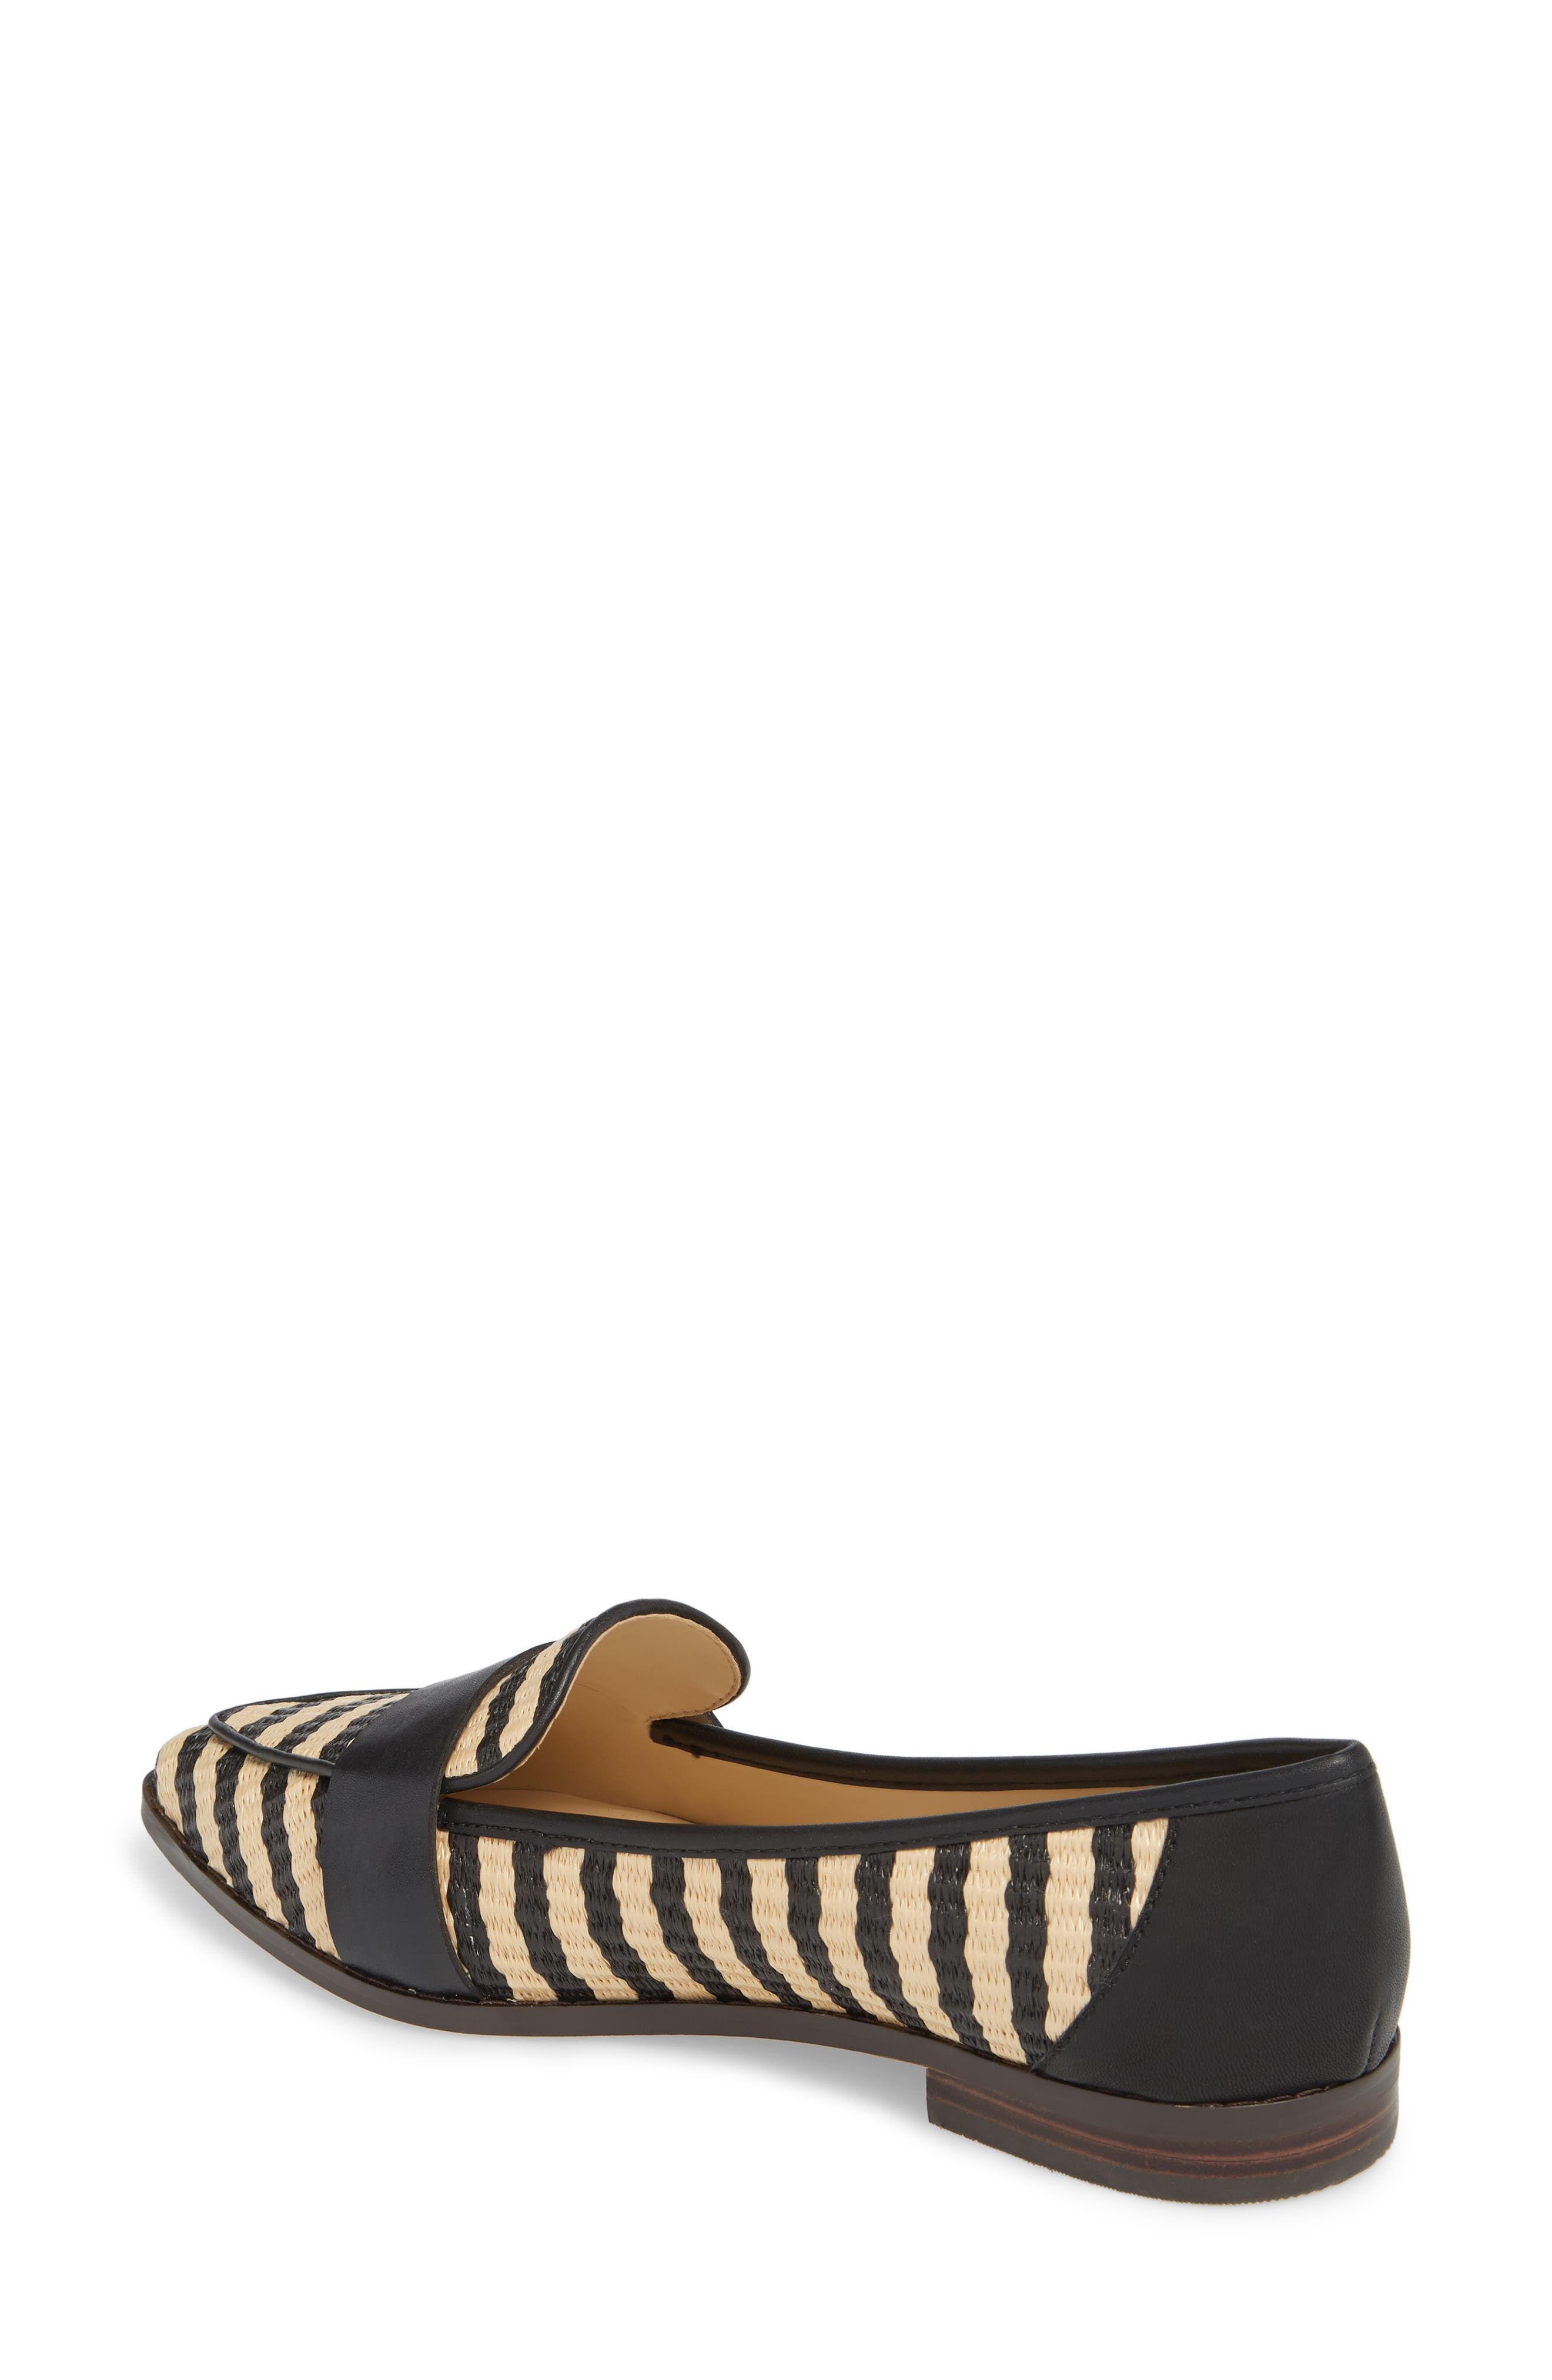 Edie Loafer,                             Alternate thumbnail 2, color,                             Natural/ Black